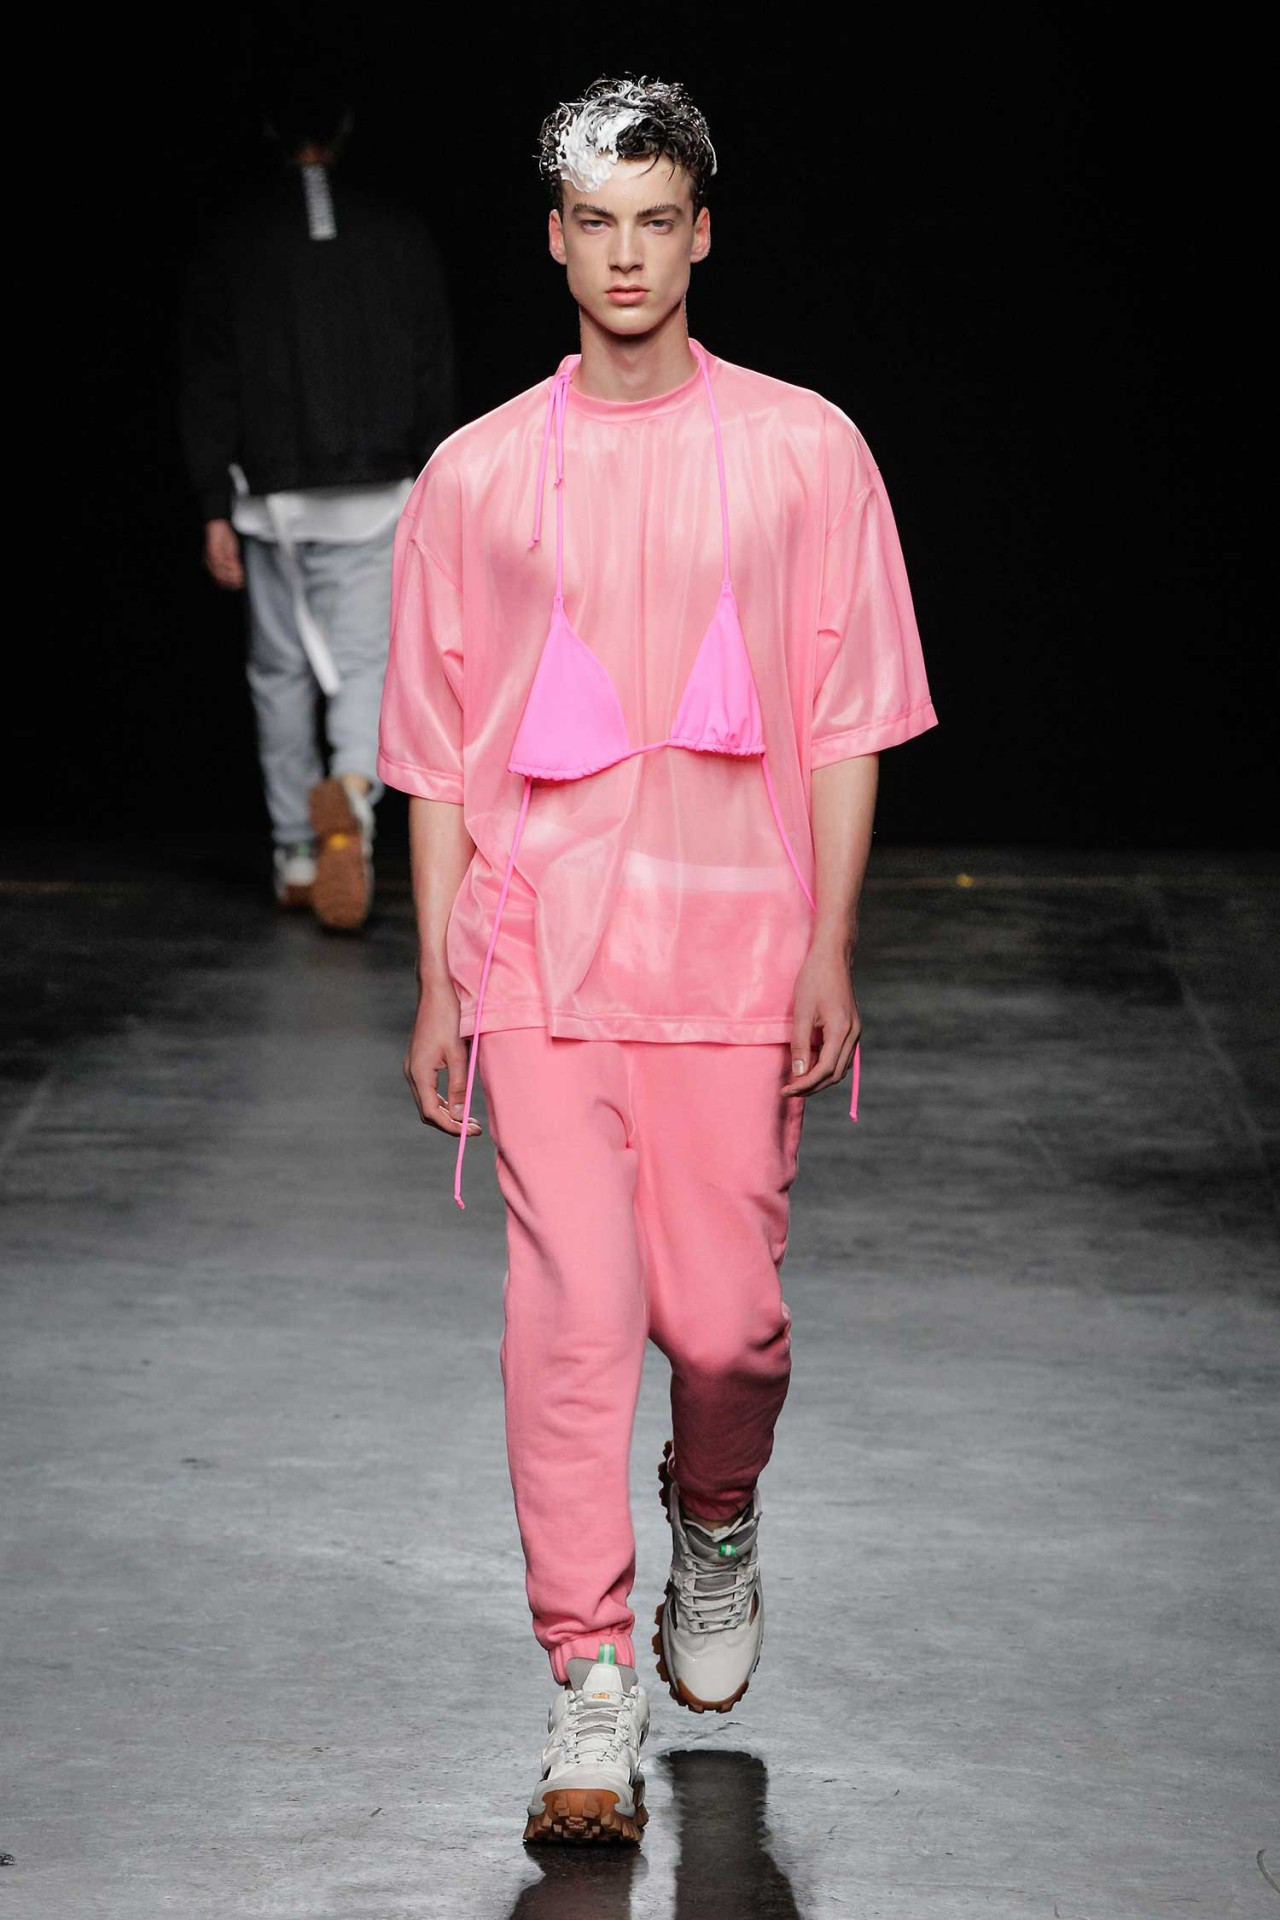 Christopher Shannon SS16. Image courtesy of Christopher Shannon.